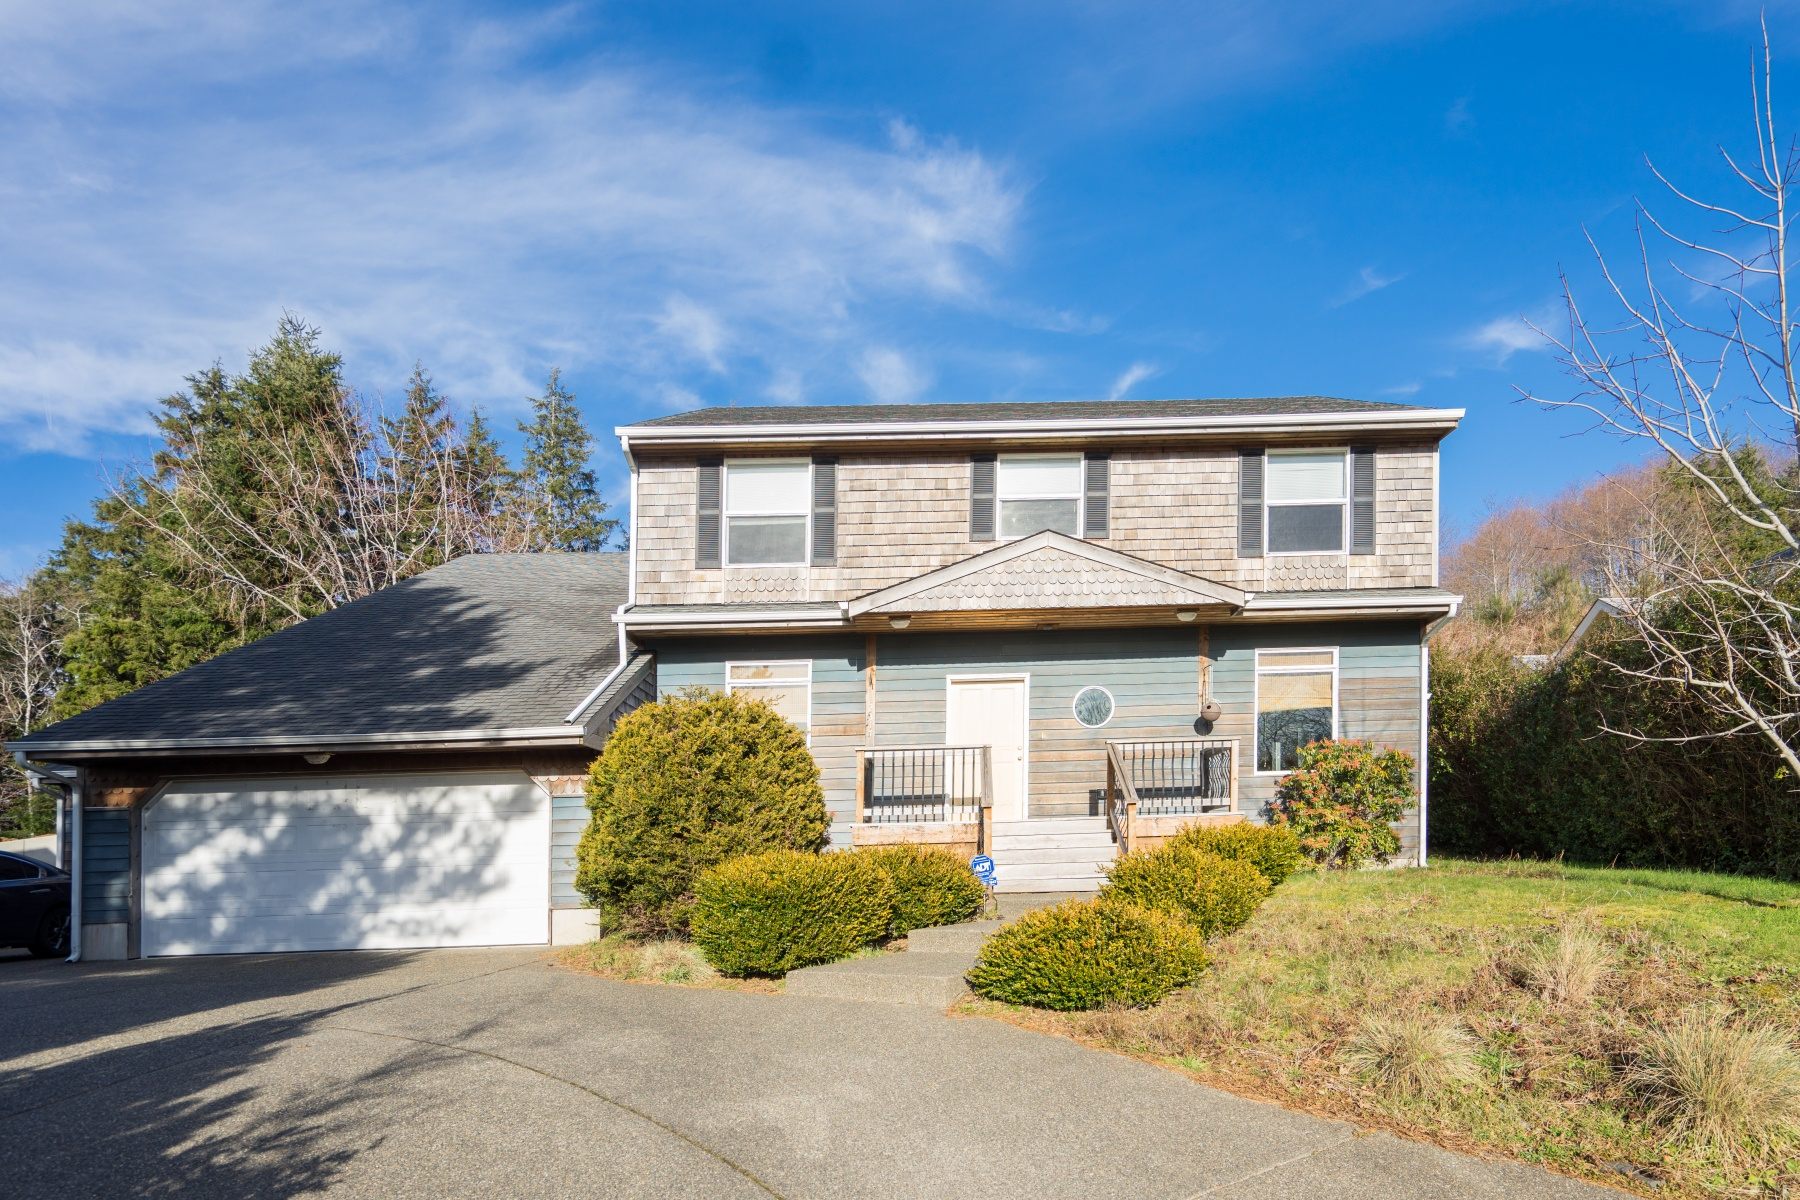 Single Family Home for Sale at 2317 Lewis and Clark RD, SEASIDE Seaside, Oregon, 97138 United States